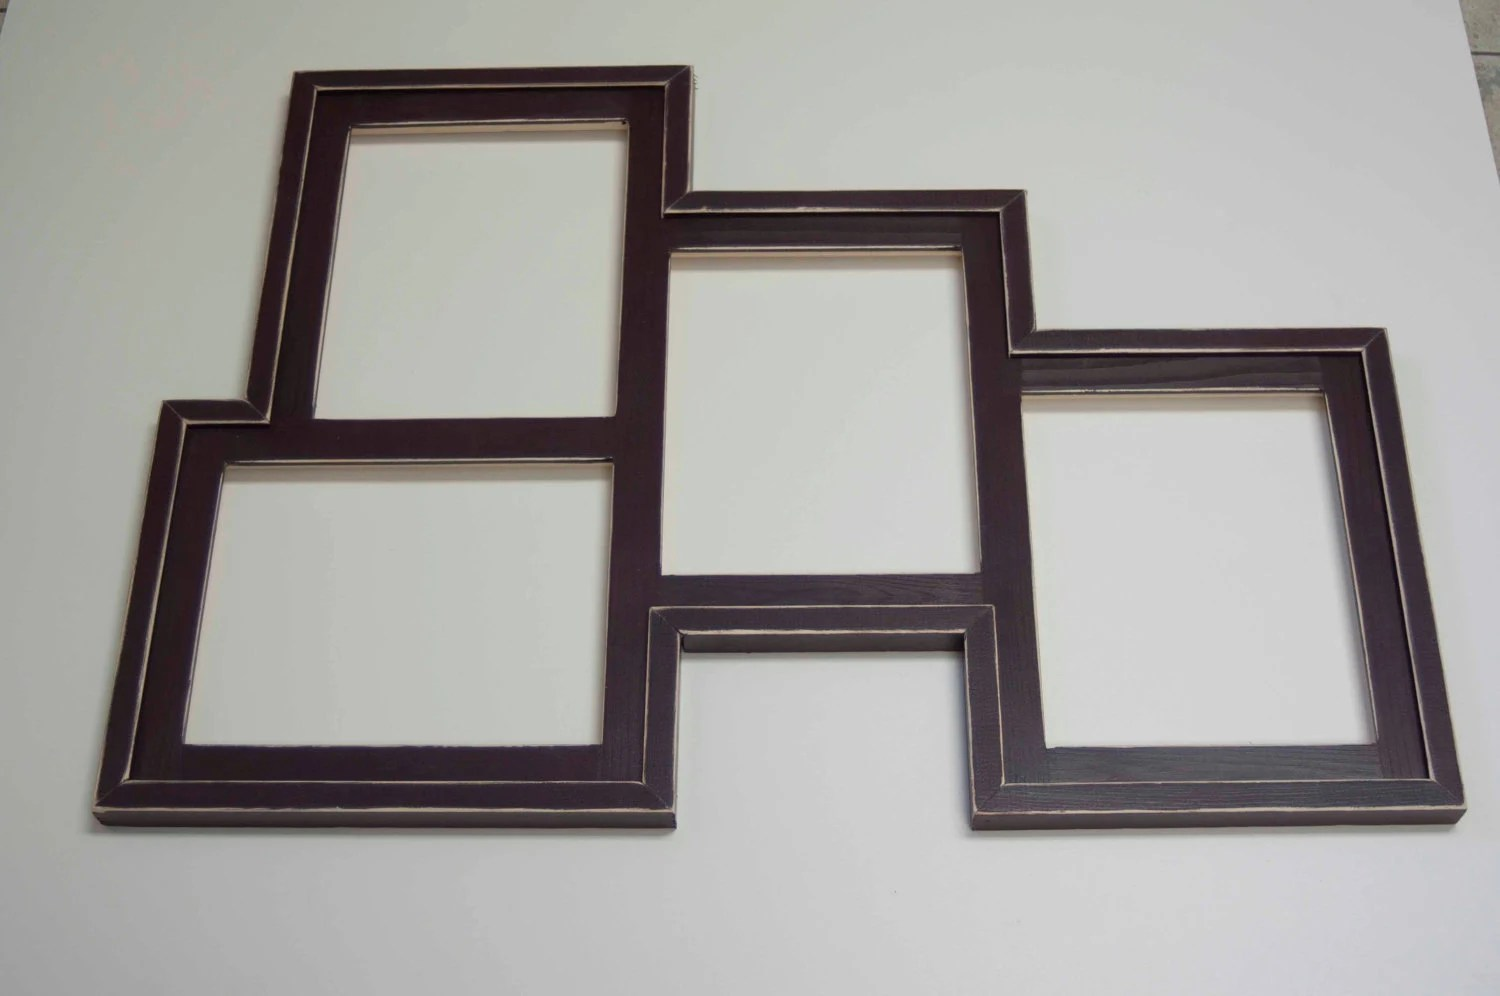 Collage Frames Australia Collage Picture Frame Multi 4 Opening 8x10 Distressed